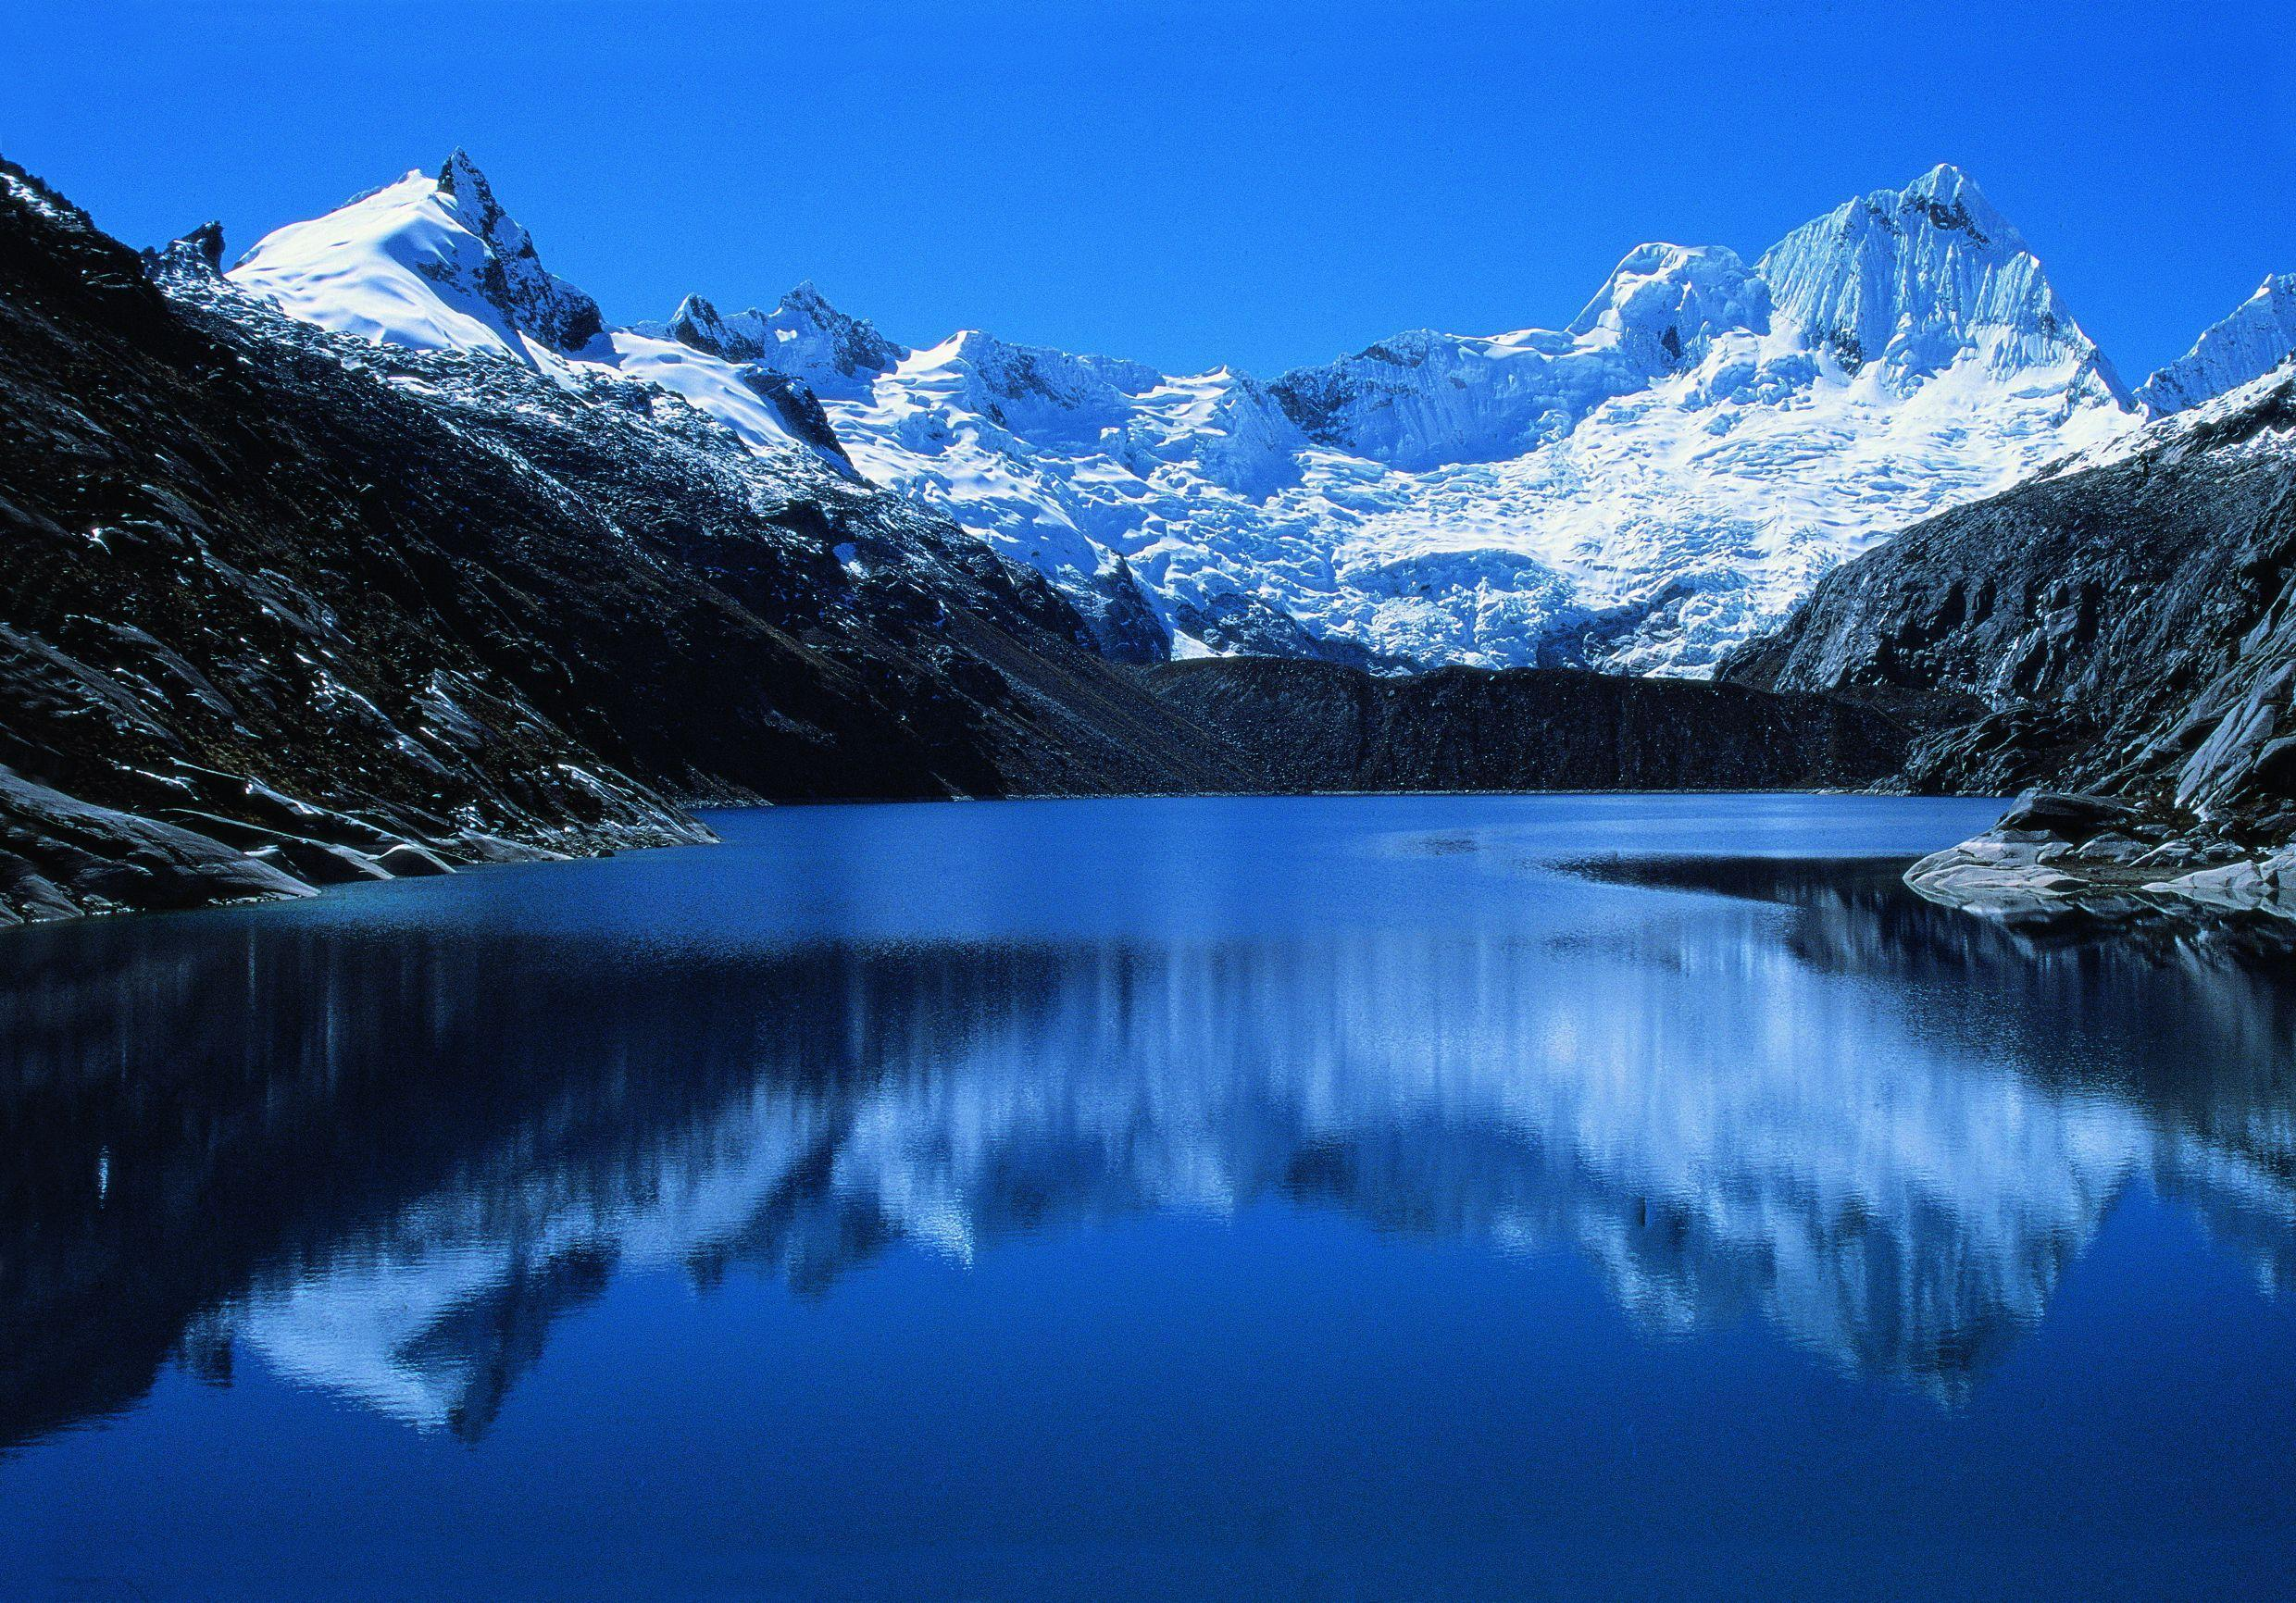 Blue lake in Peru wallpapers and image